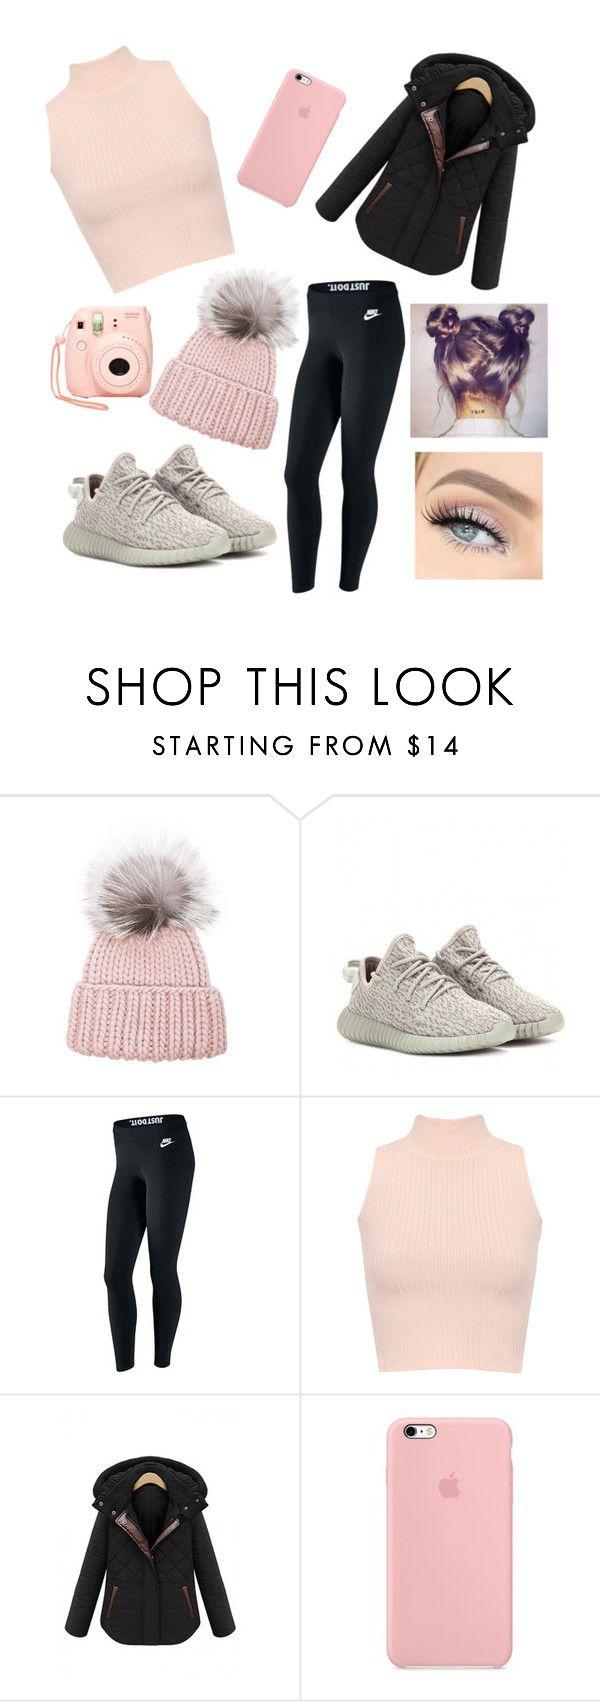 """""""Pink in Winter🍉🌨"""" by kylieirwin11 ❤ liked on Polyvore featuring Eugenia Kim, adidas Originals, NIKE, WearAll and Nasty Gal"""